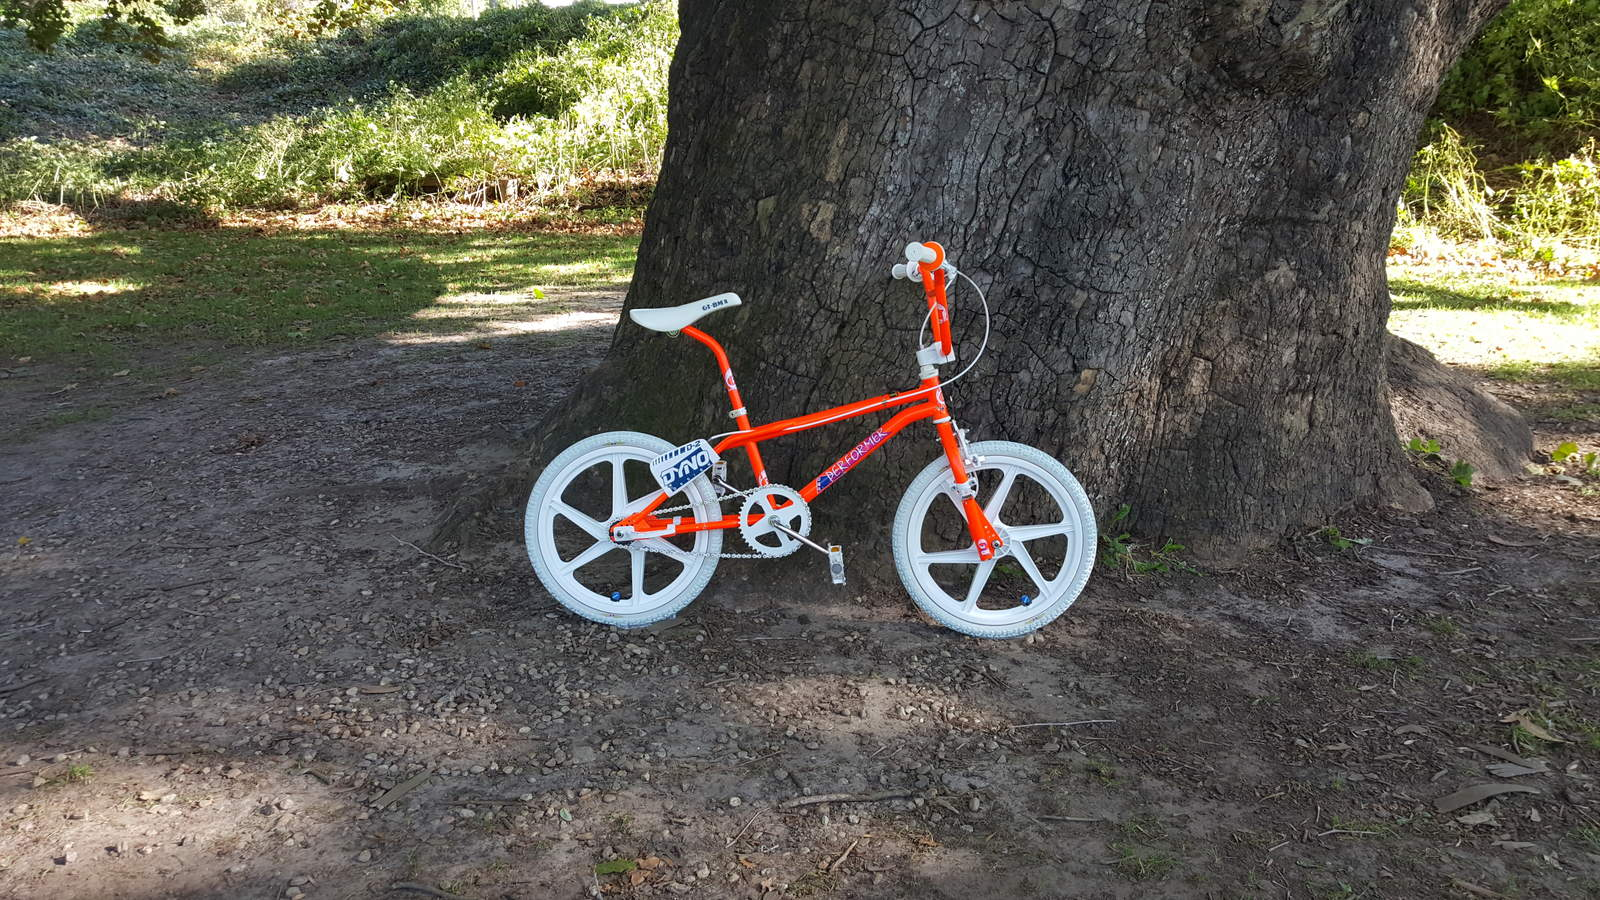 http://uploads.bmxmuseum.com/user-images/243997/20181021_1447445bd226631c.jpg